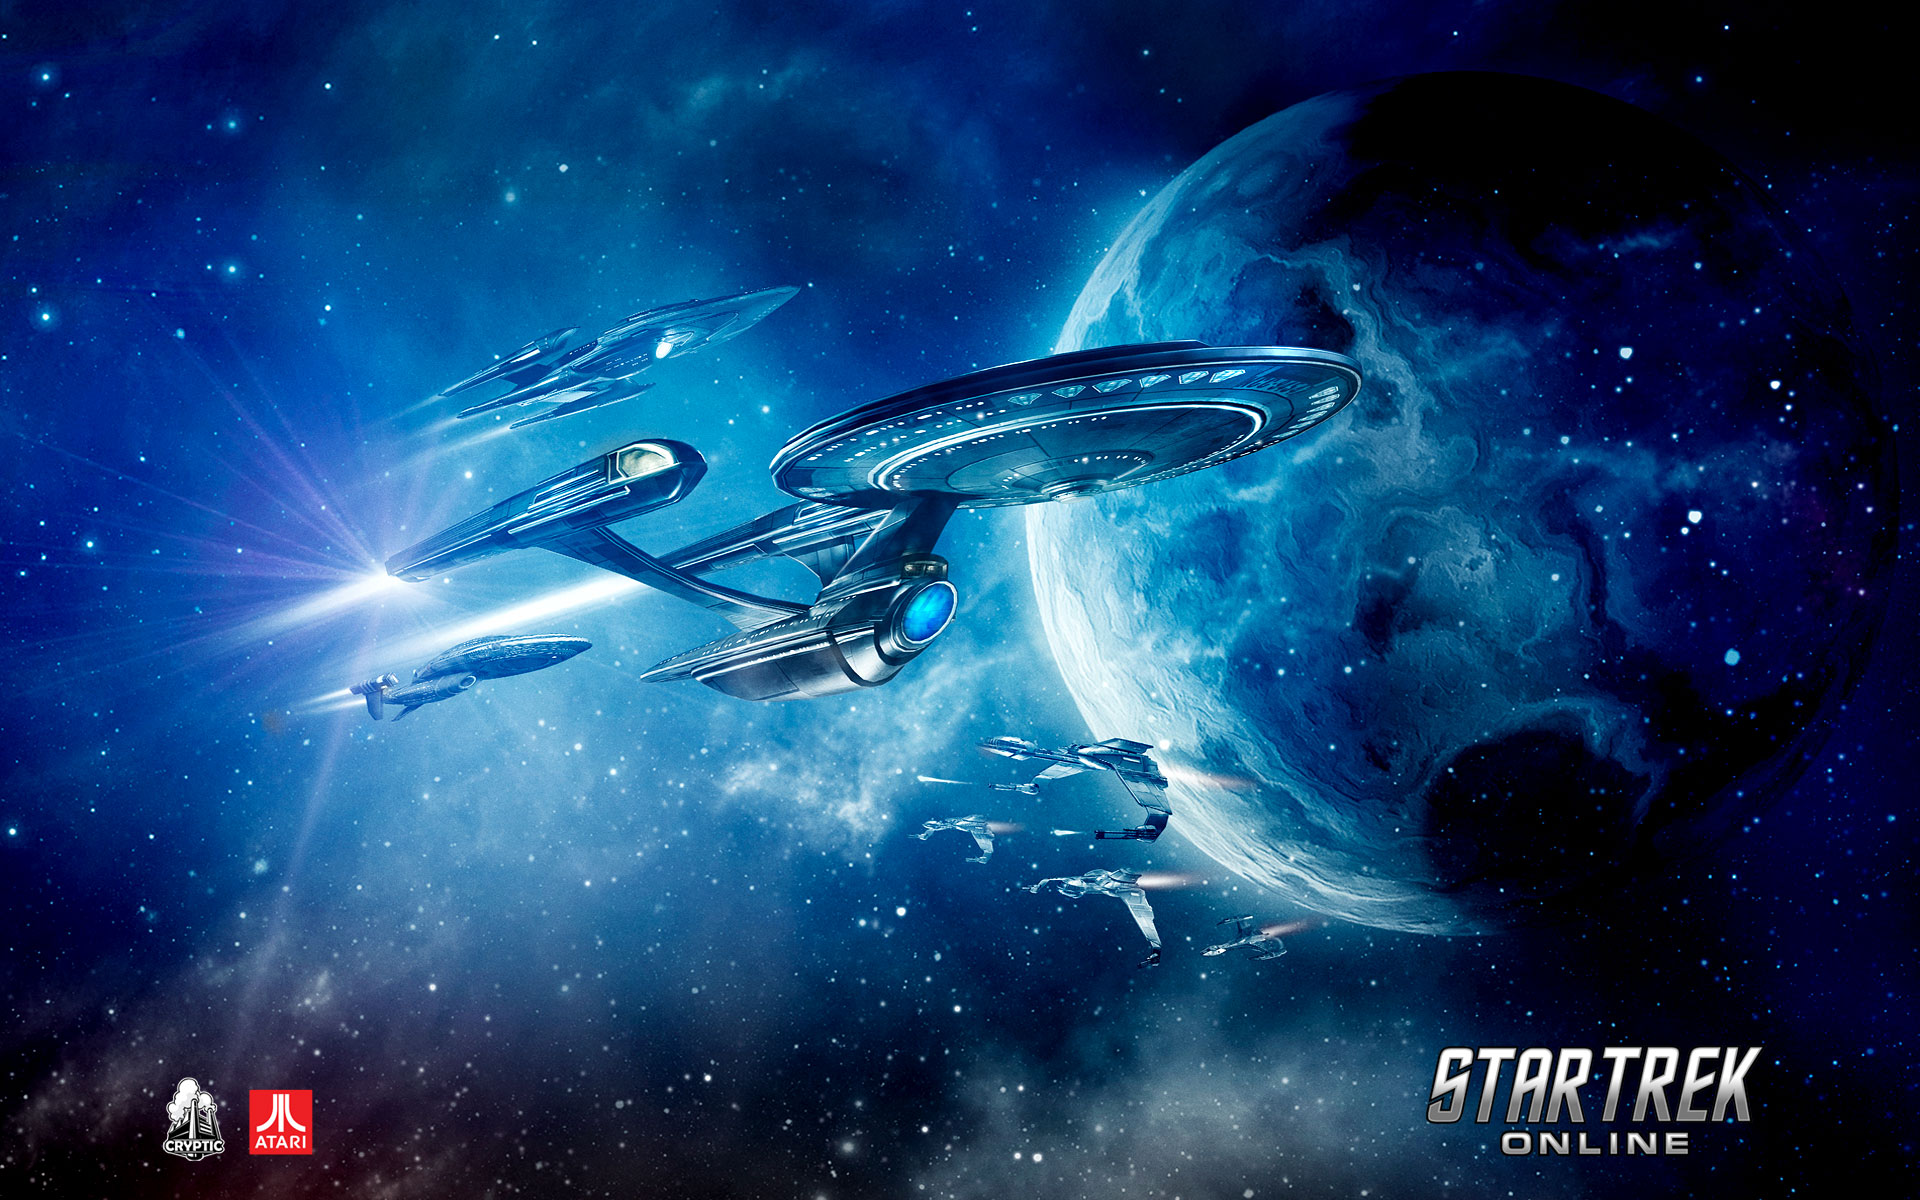 Startrek Wallpaper